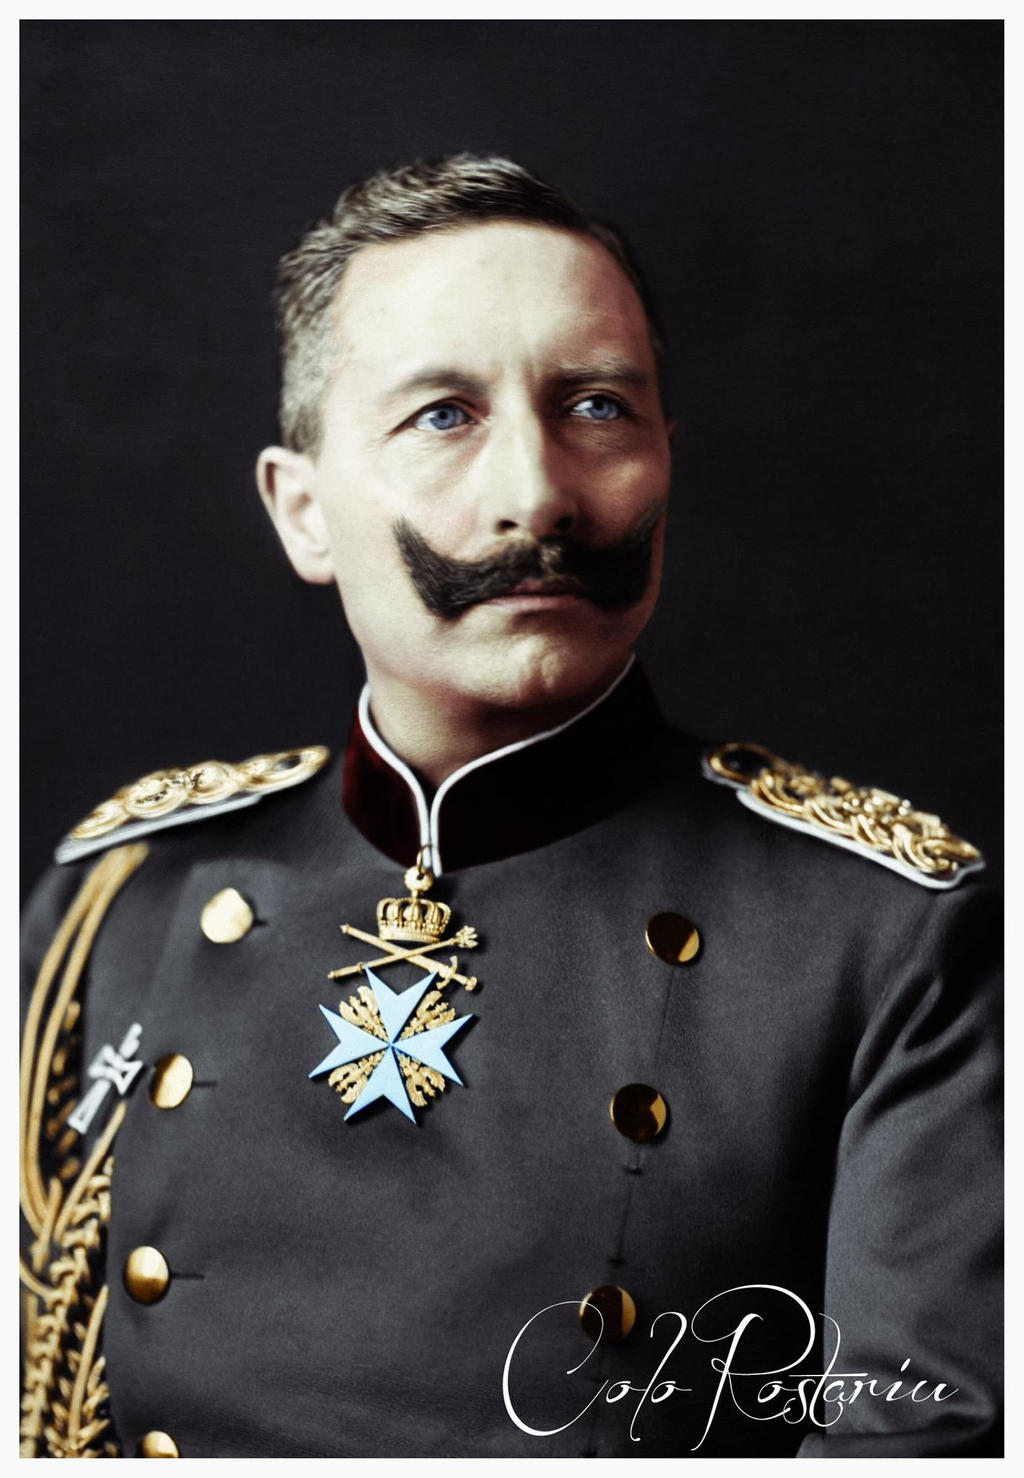 Wilhelm II, German Emperor by rostariu